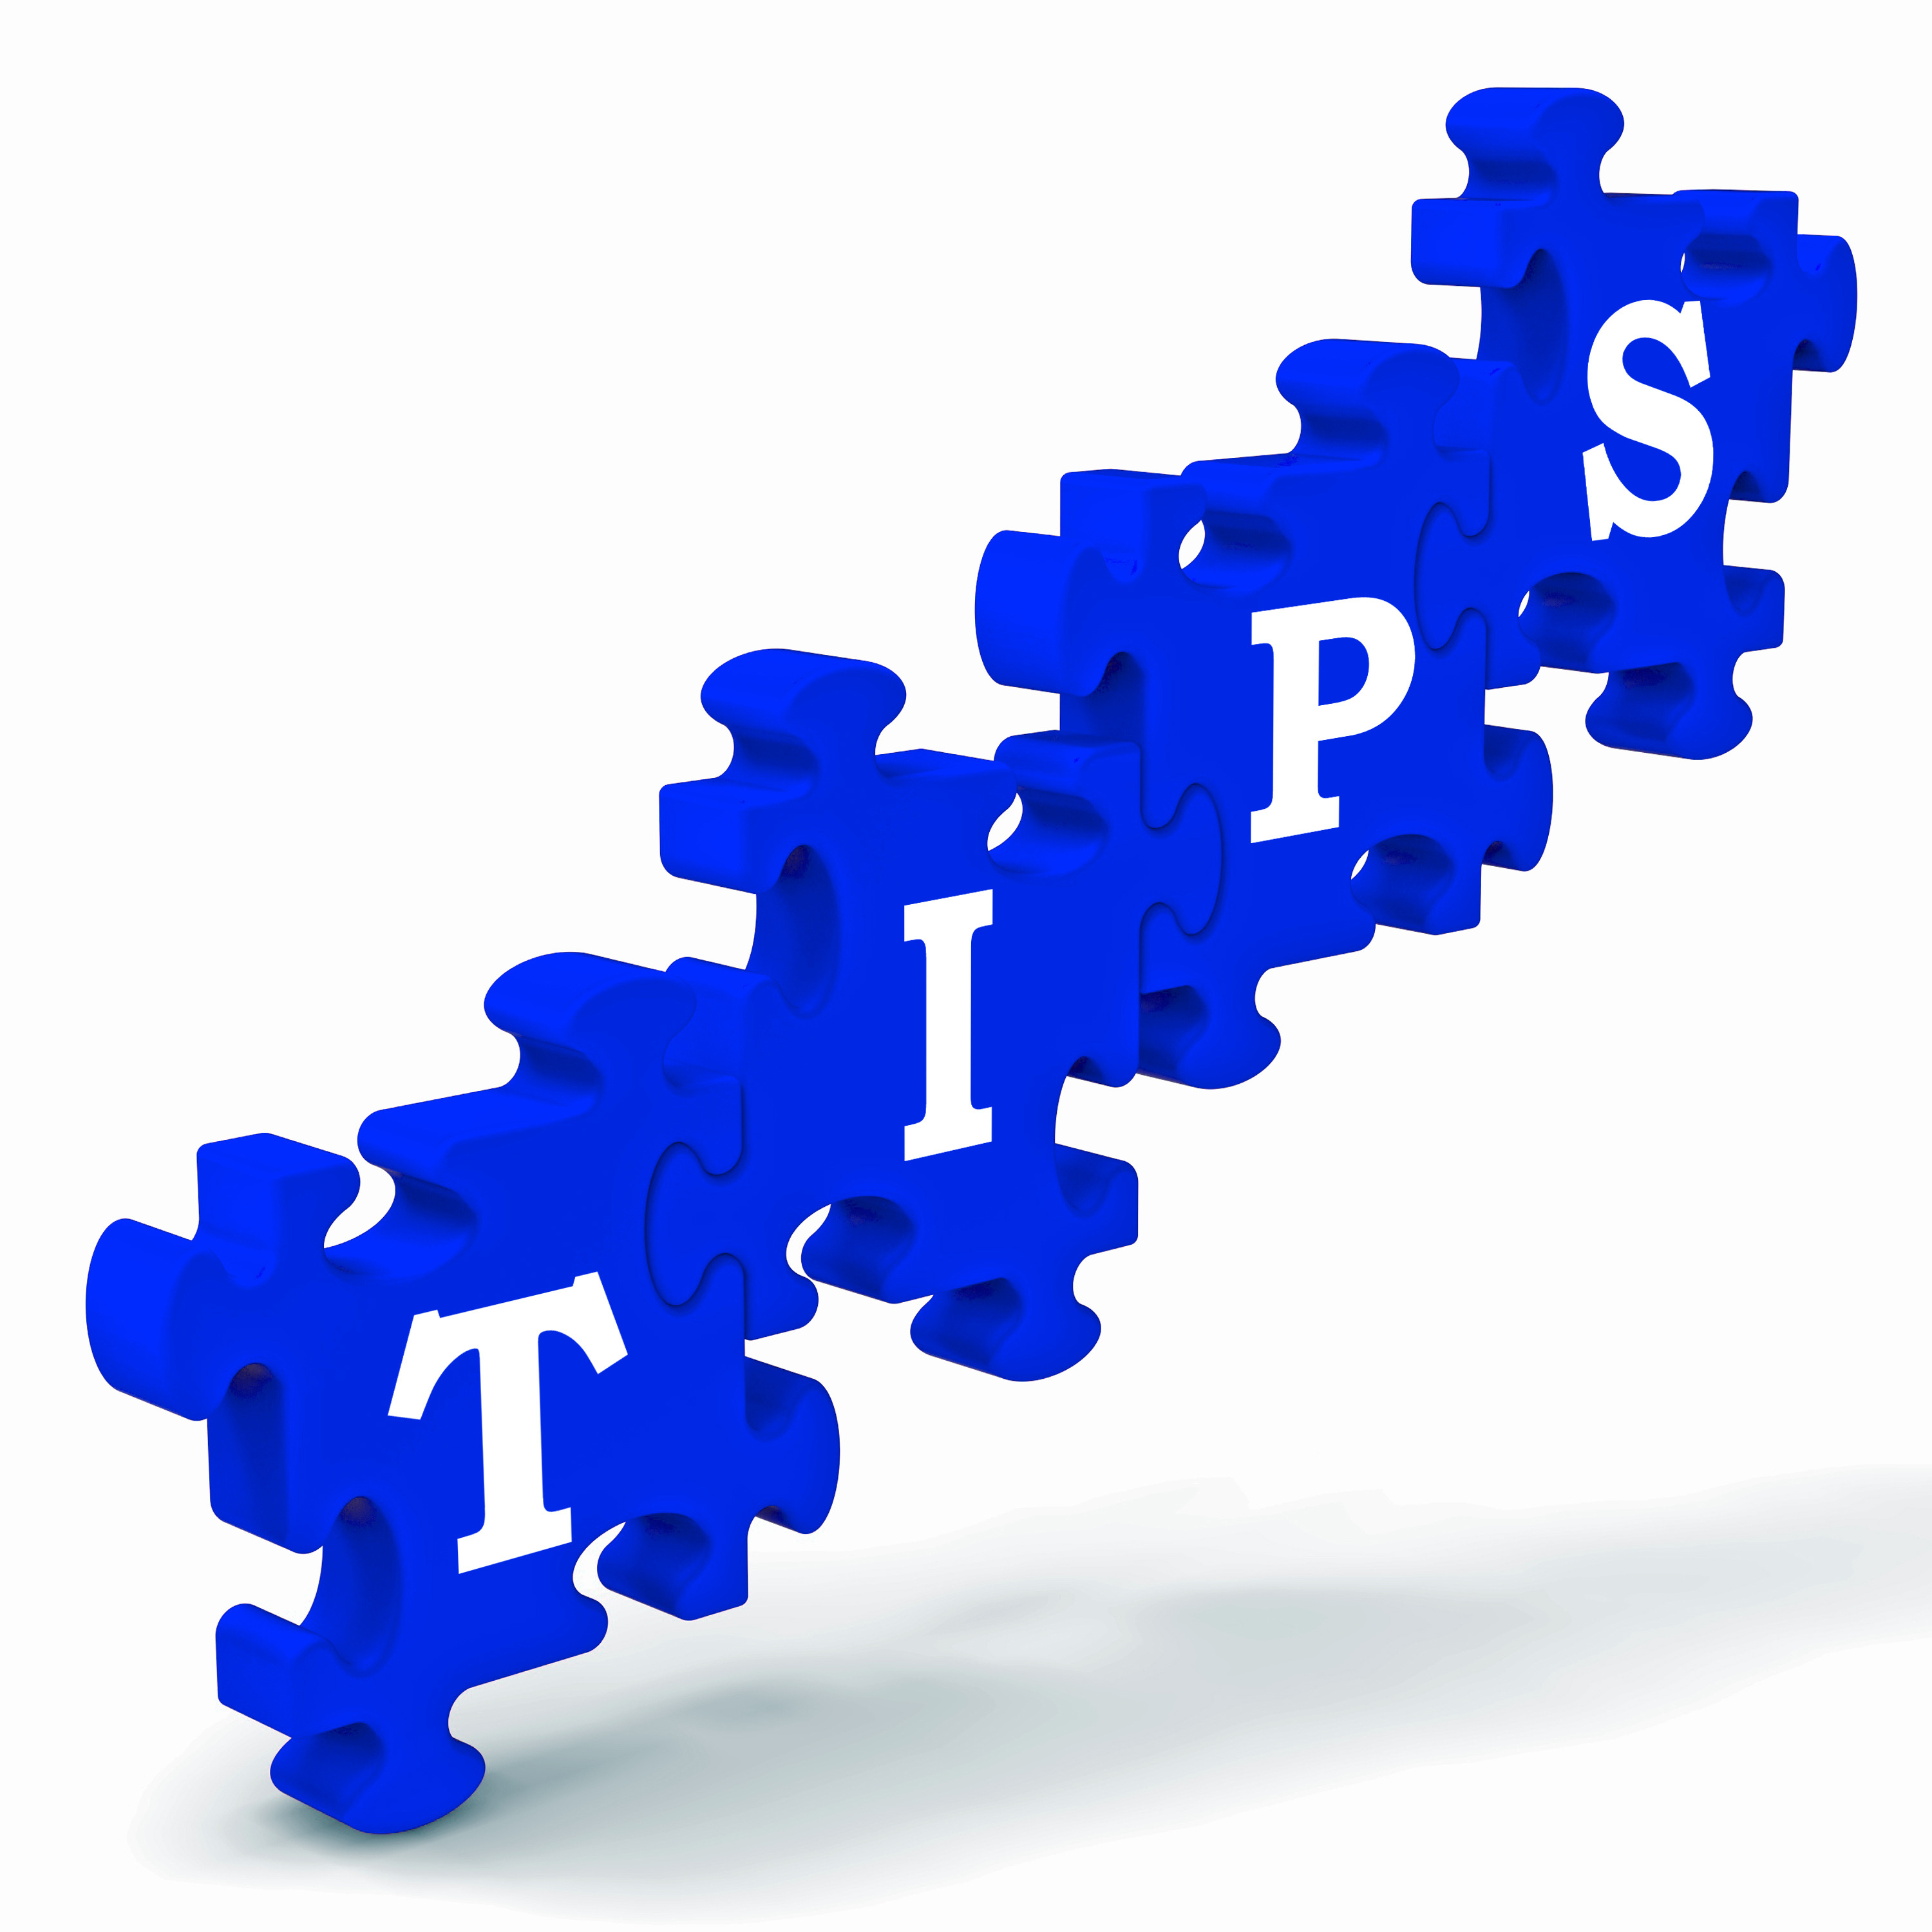 Tips Puzzle Showing Tricks, Hints And Clues